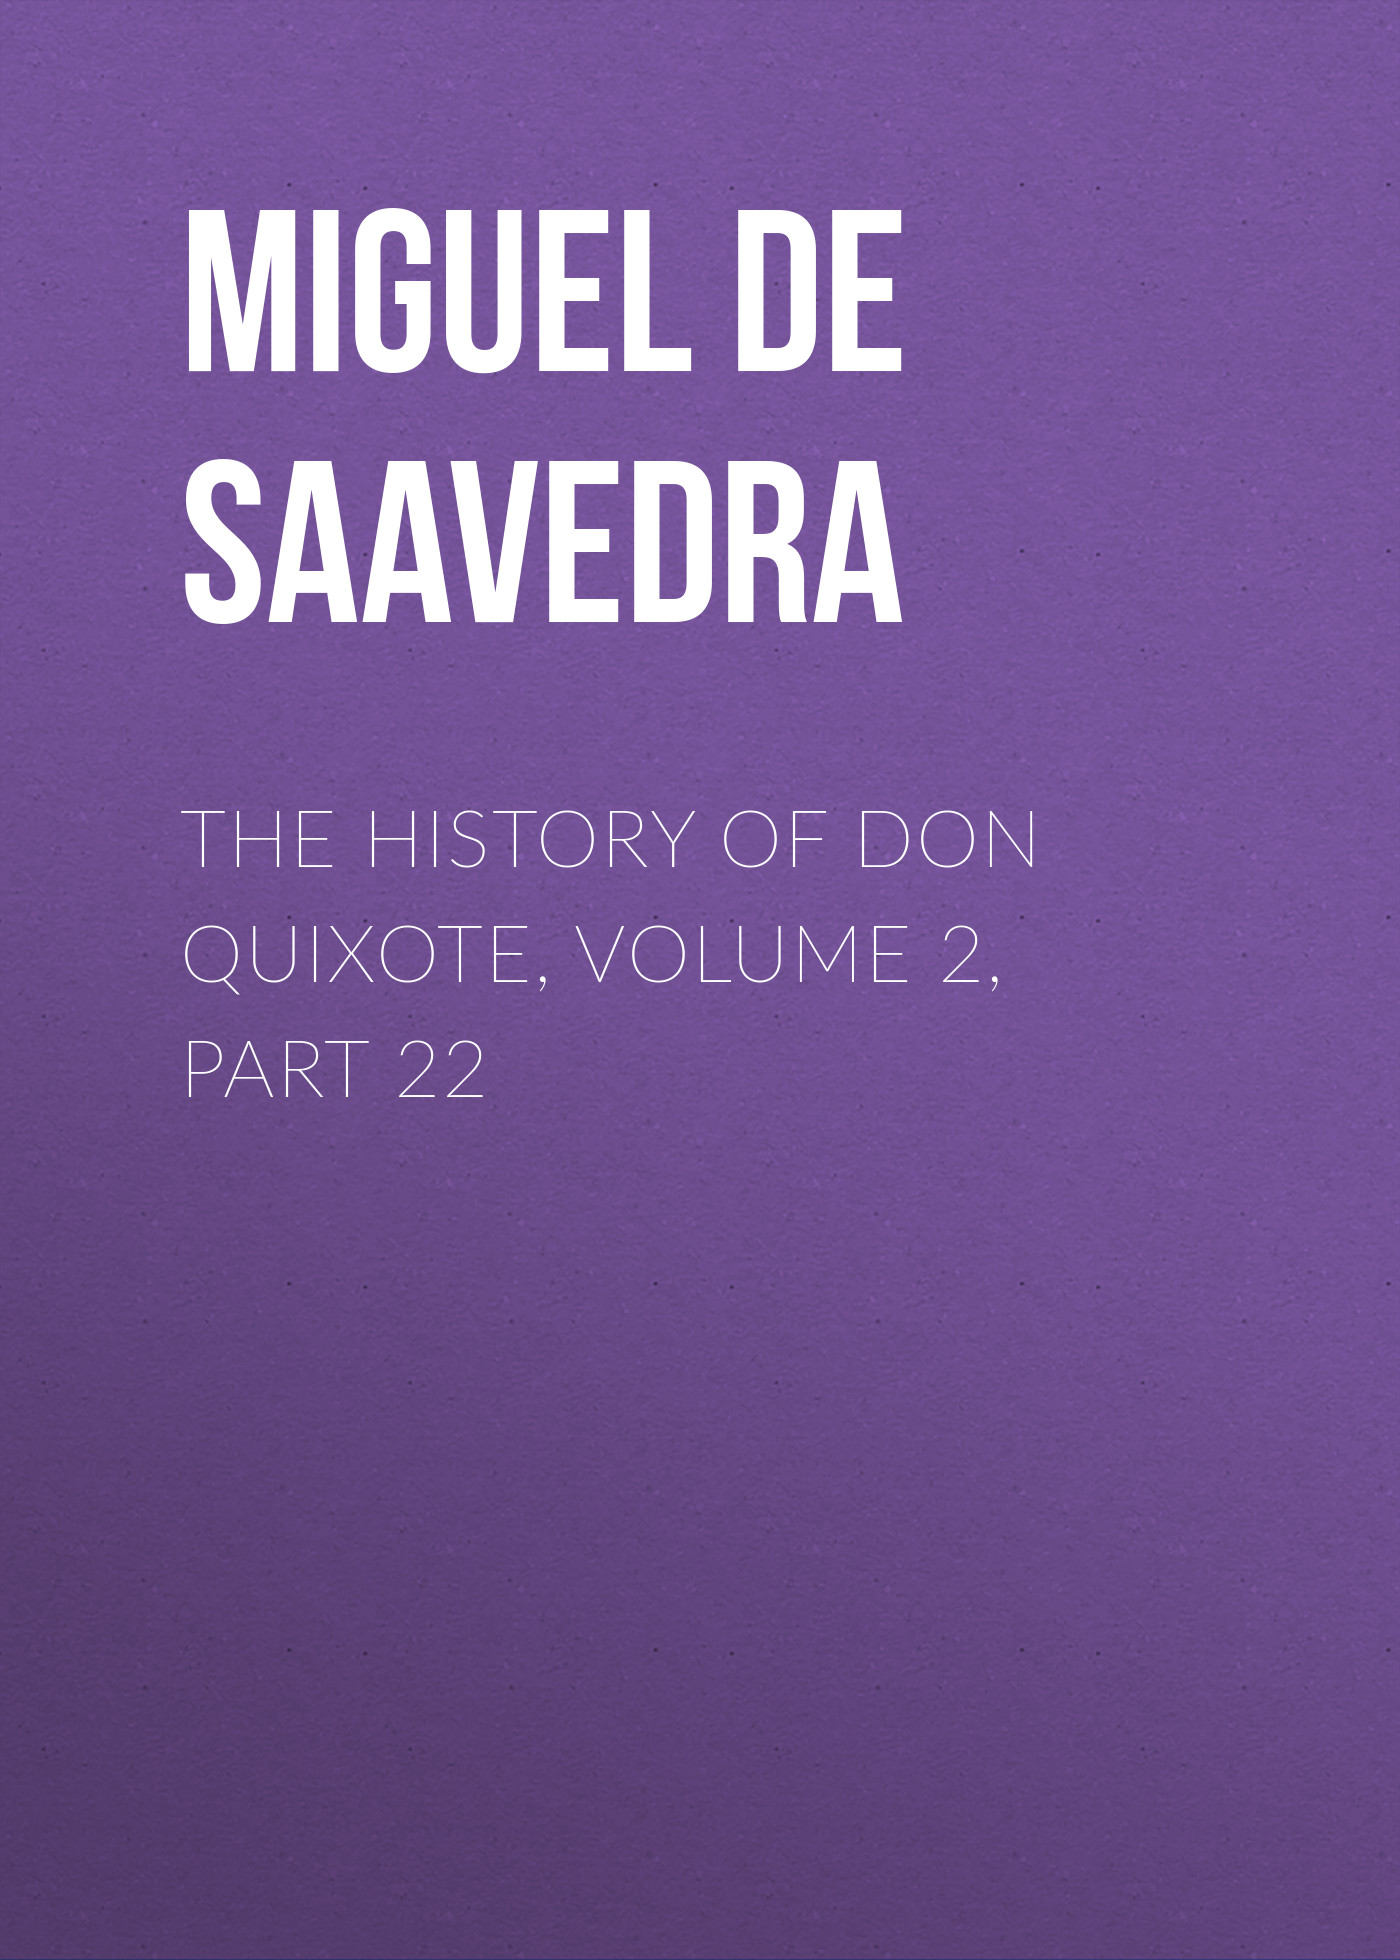 the history of don quixote volume 2 part 22